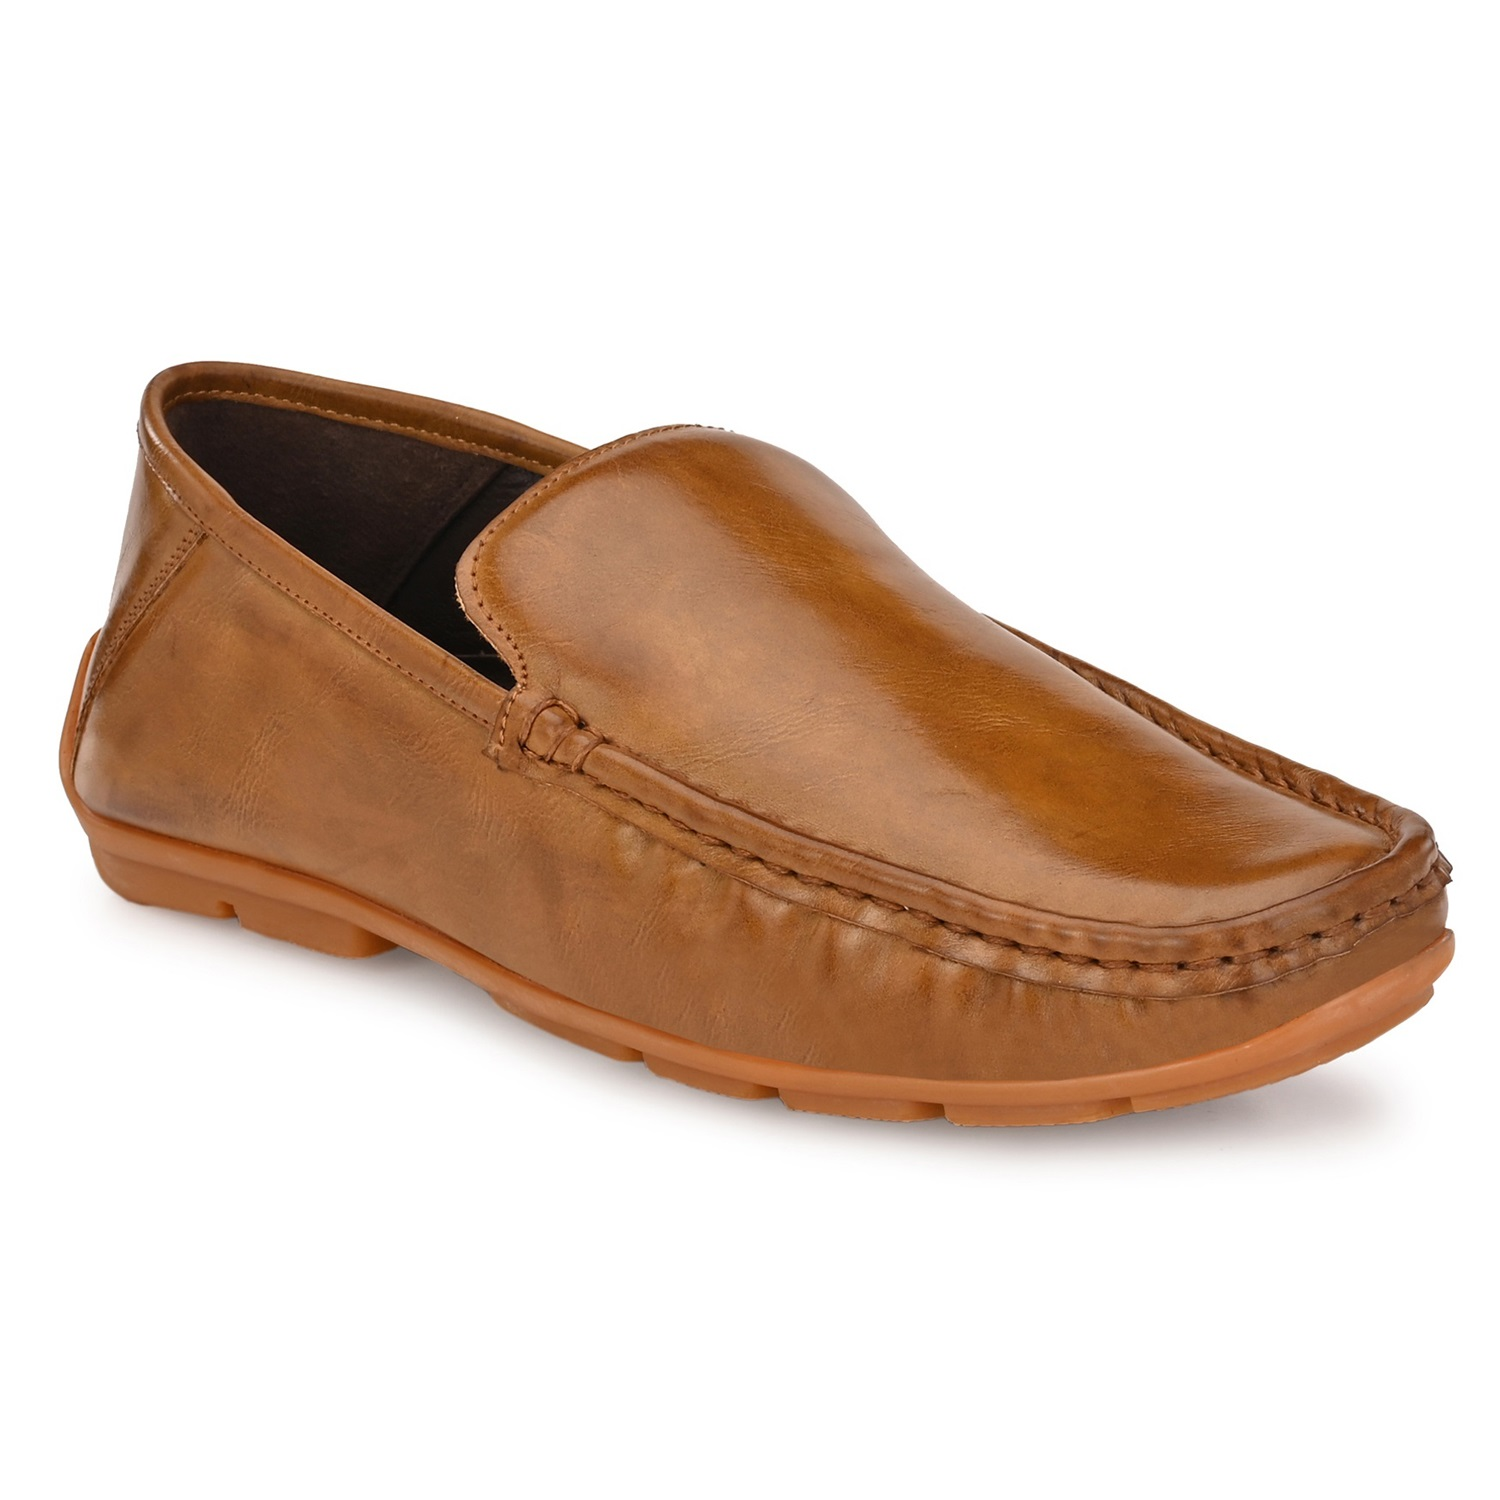 Hitz | Hitz Brown Casual Loafers with Slip-On Fastening